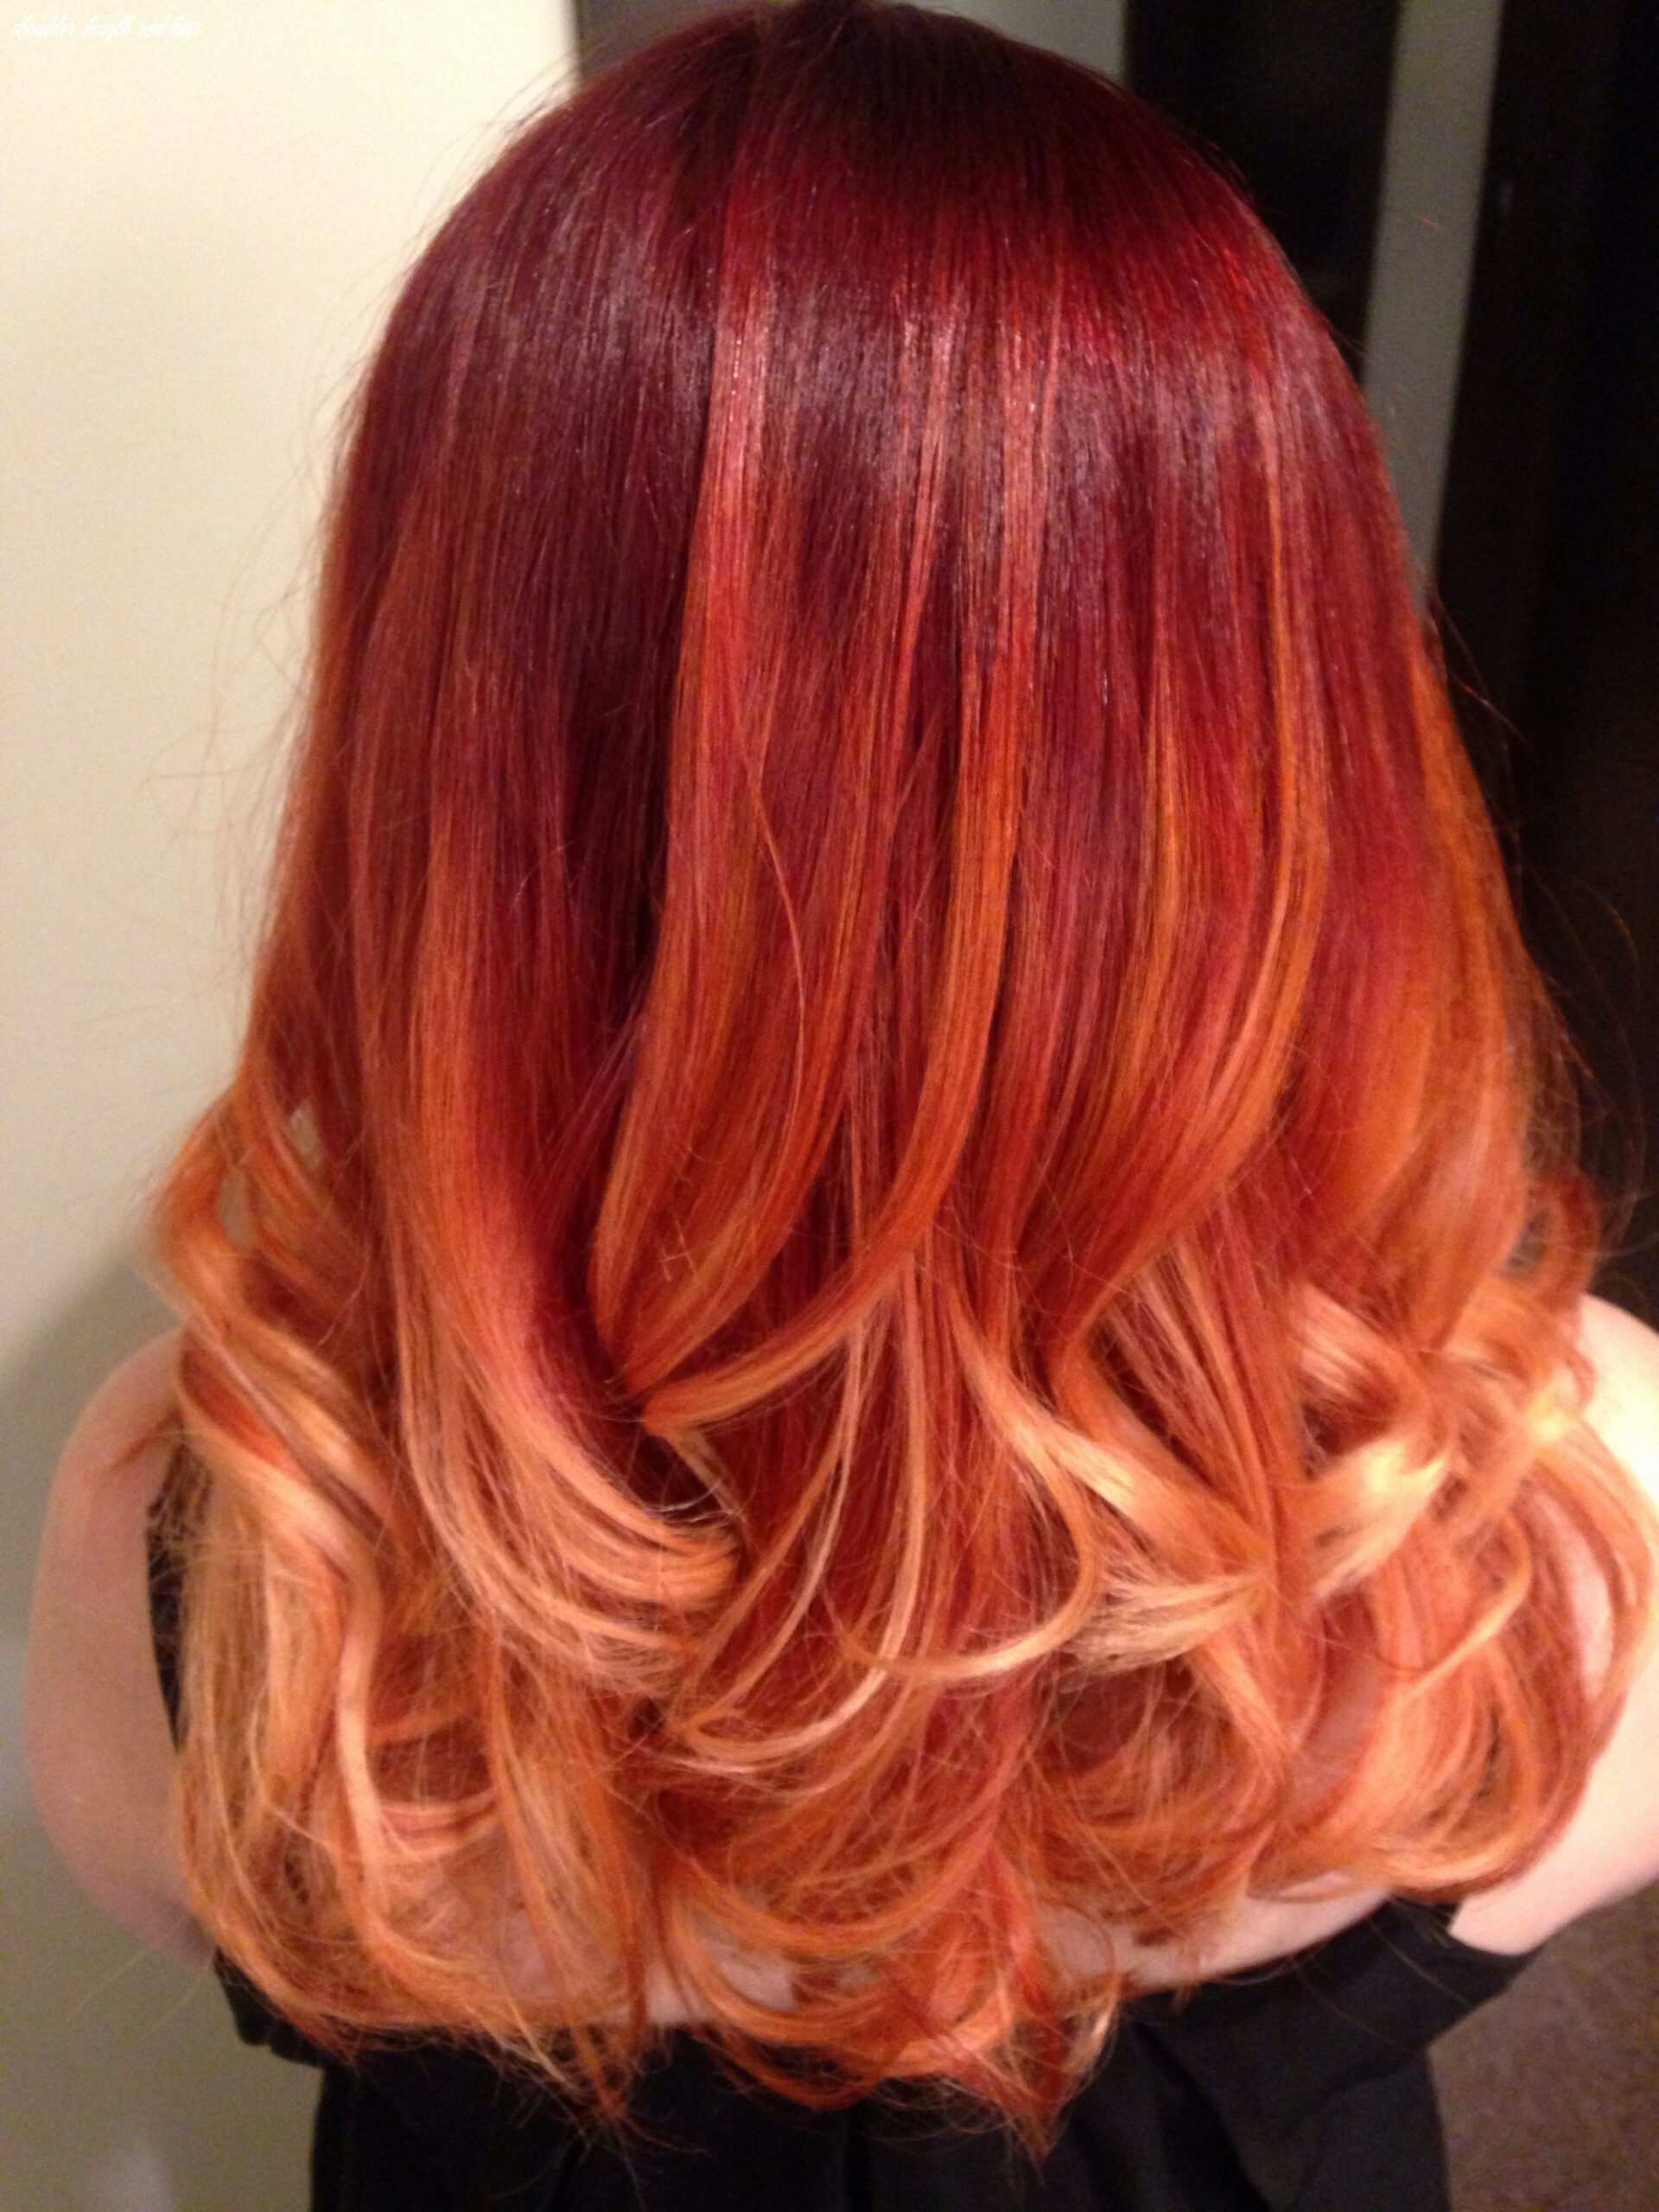 Red ombré, medium length hair done with aveda color | couleur